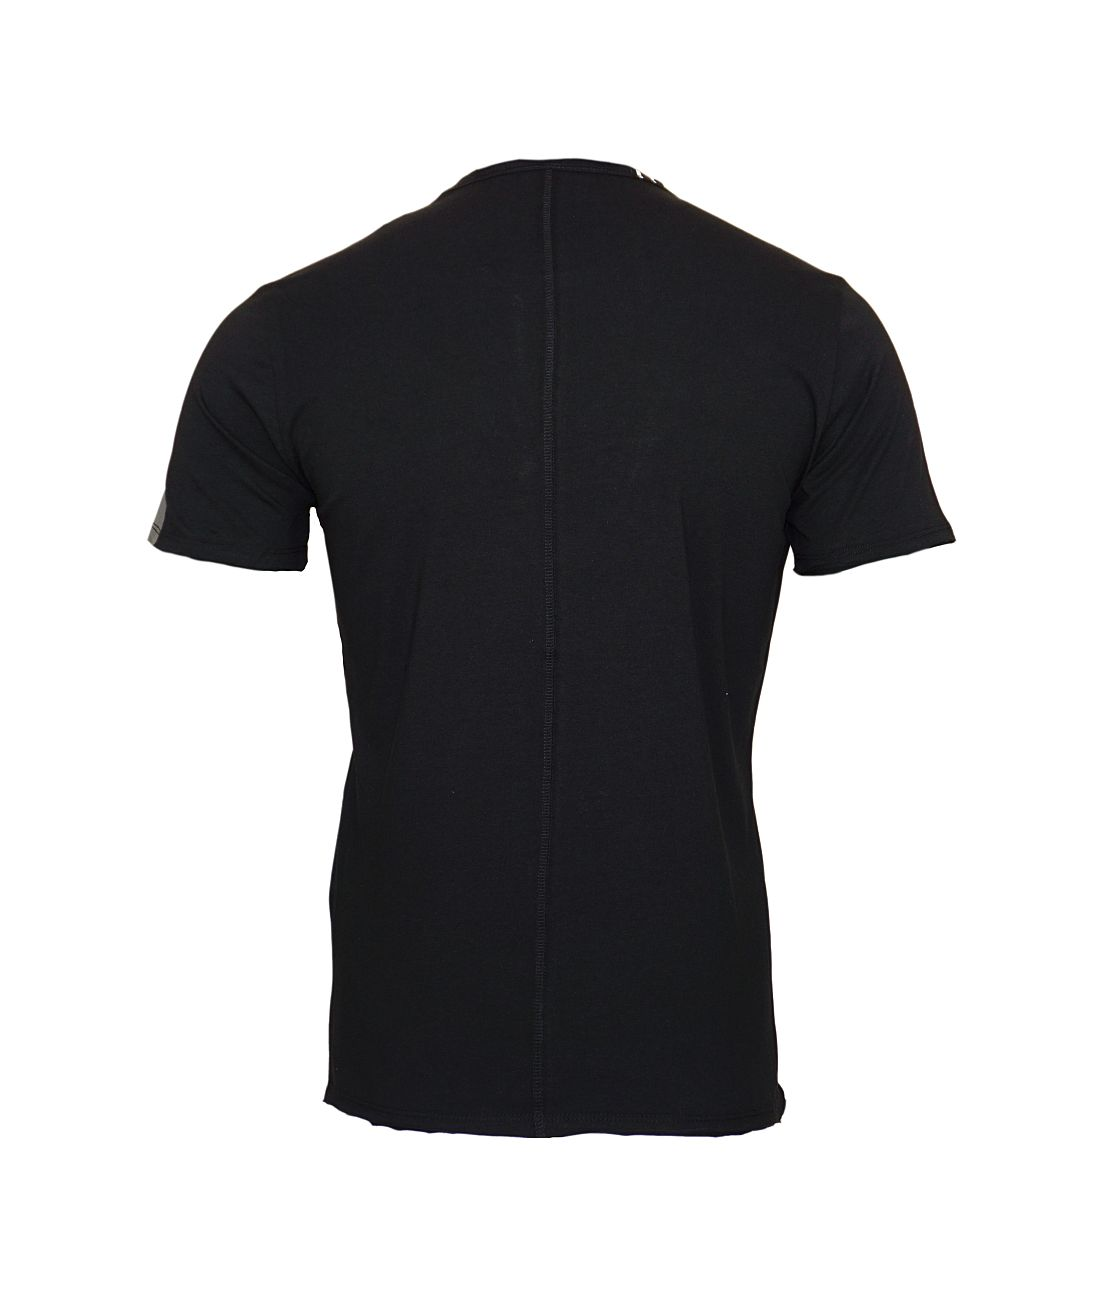 Replay T-Shirt Shirt Rundhals M3590.000 2660.098 black S18-RPT2